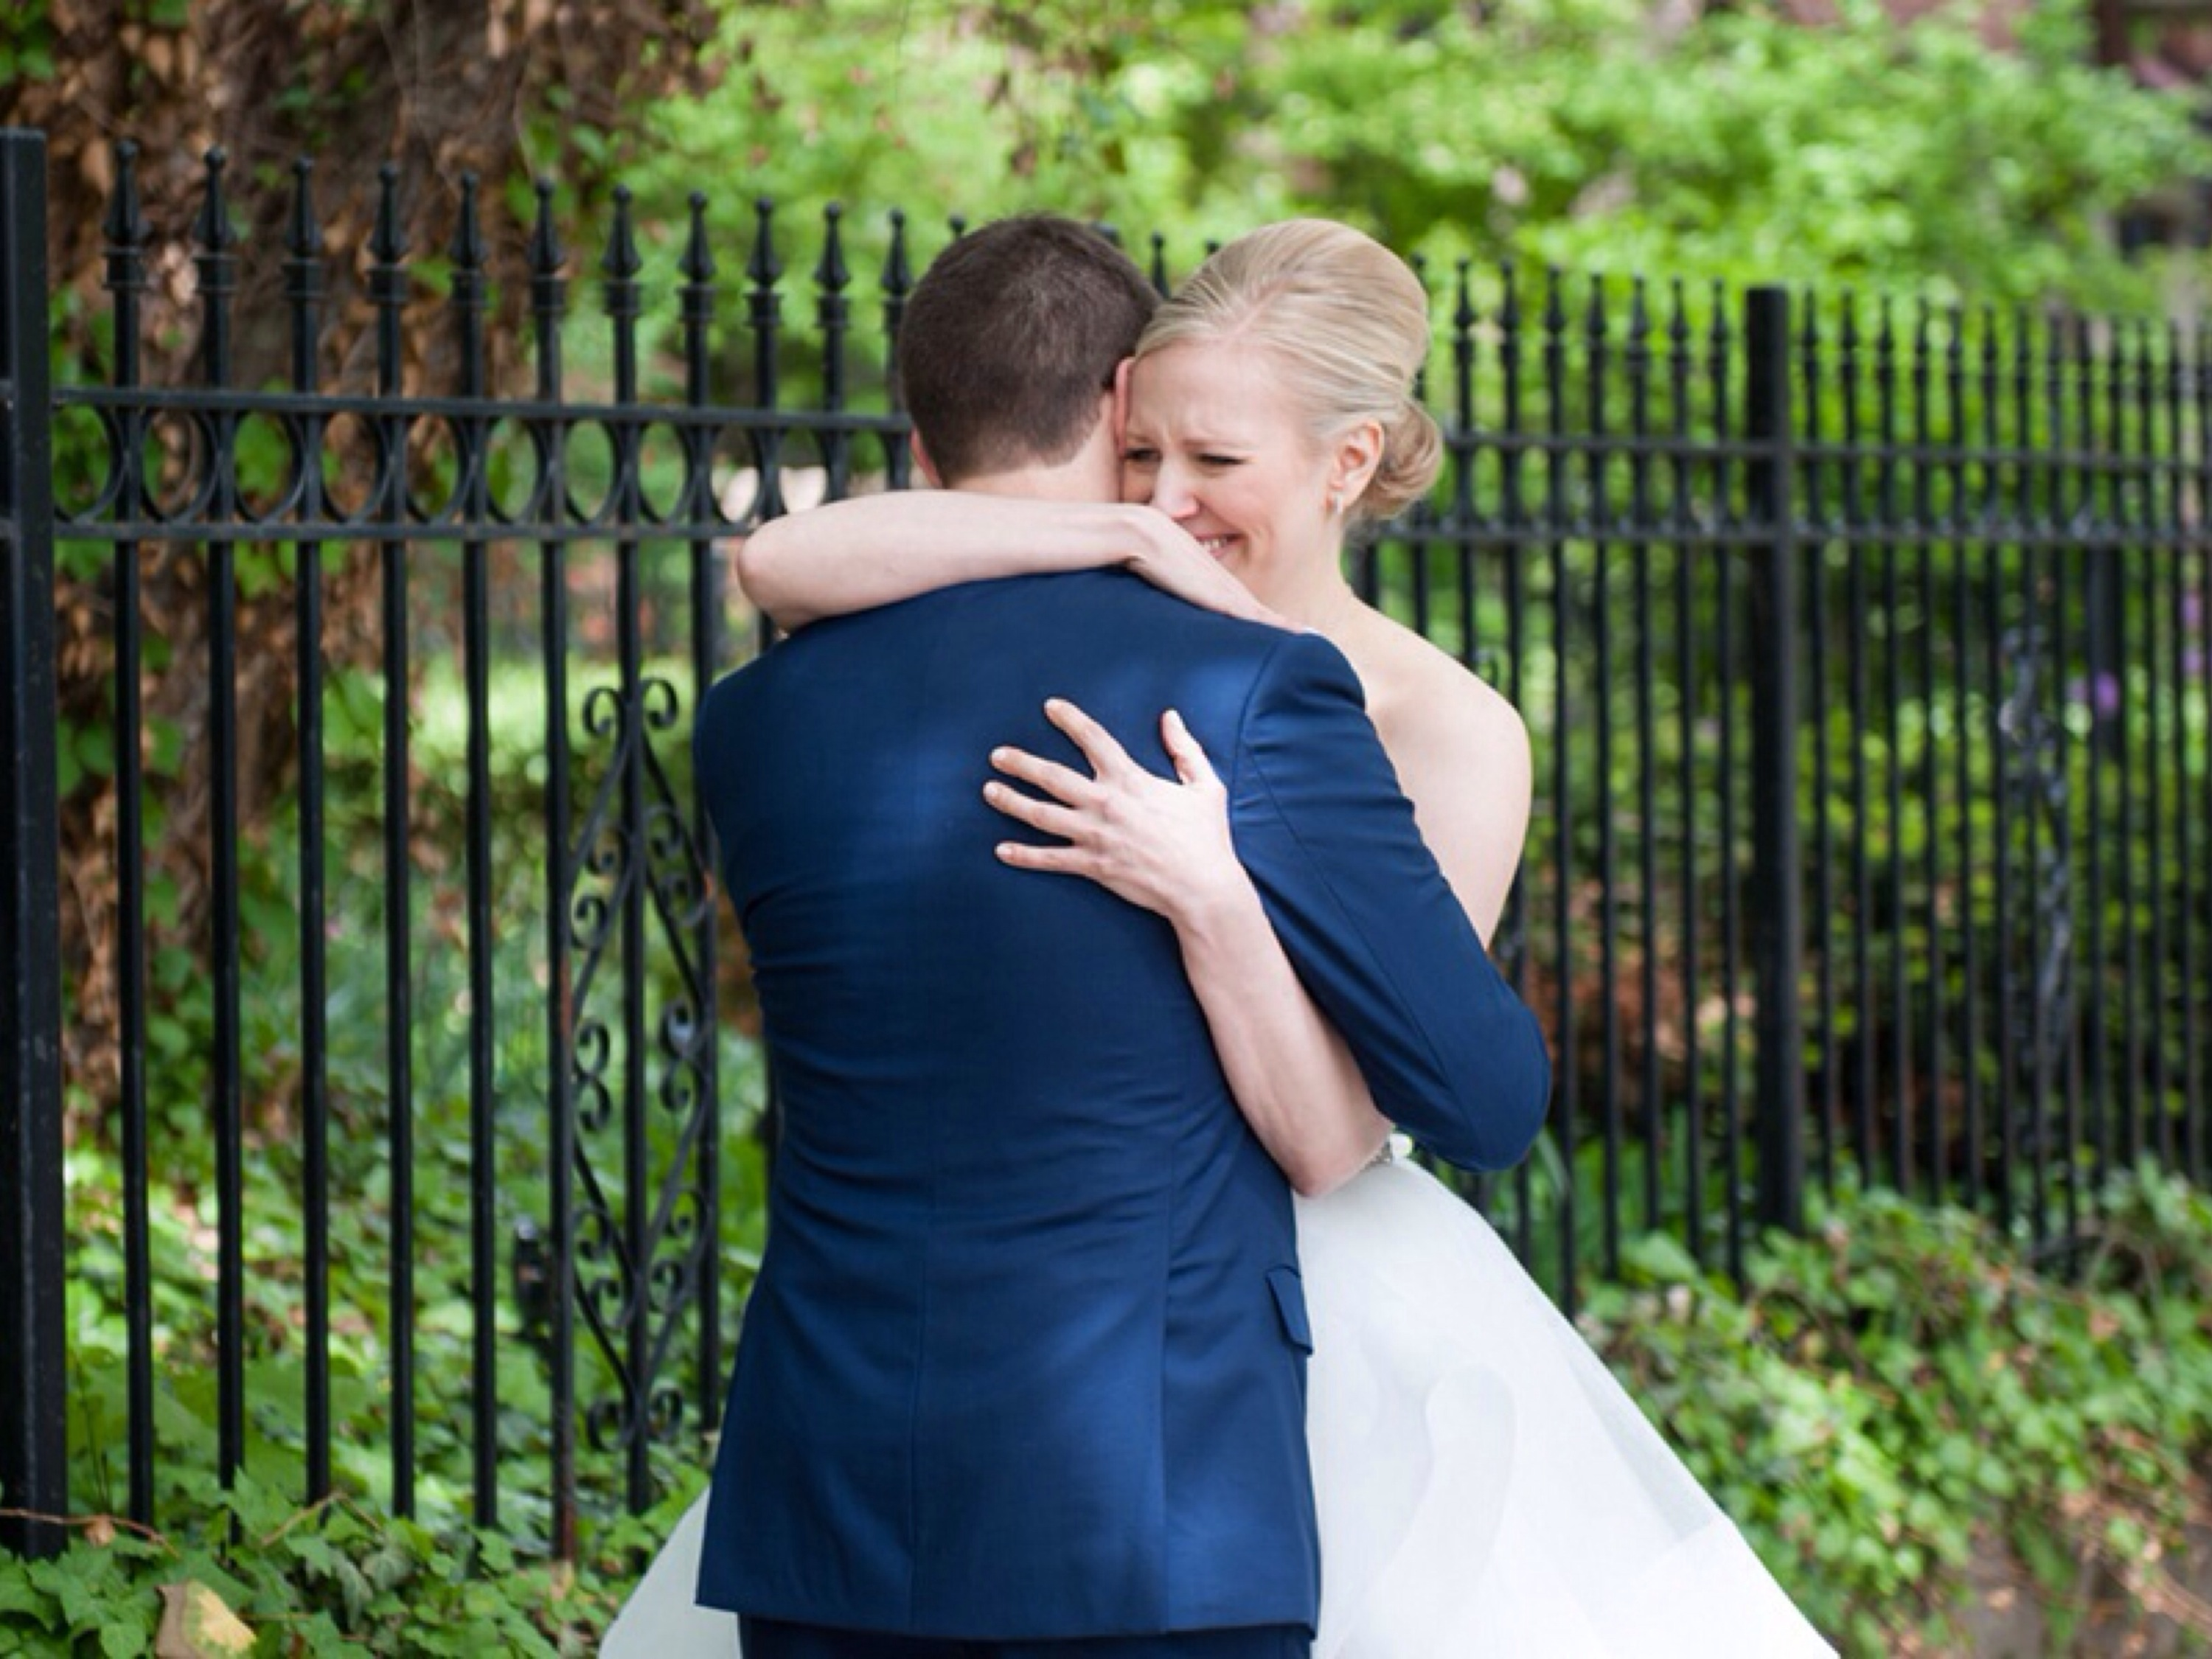 Lincoln Park Wedding: Photo by Ben Elsass Photography via Heather Renee Celebrations